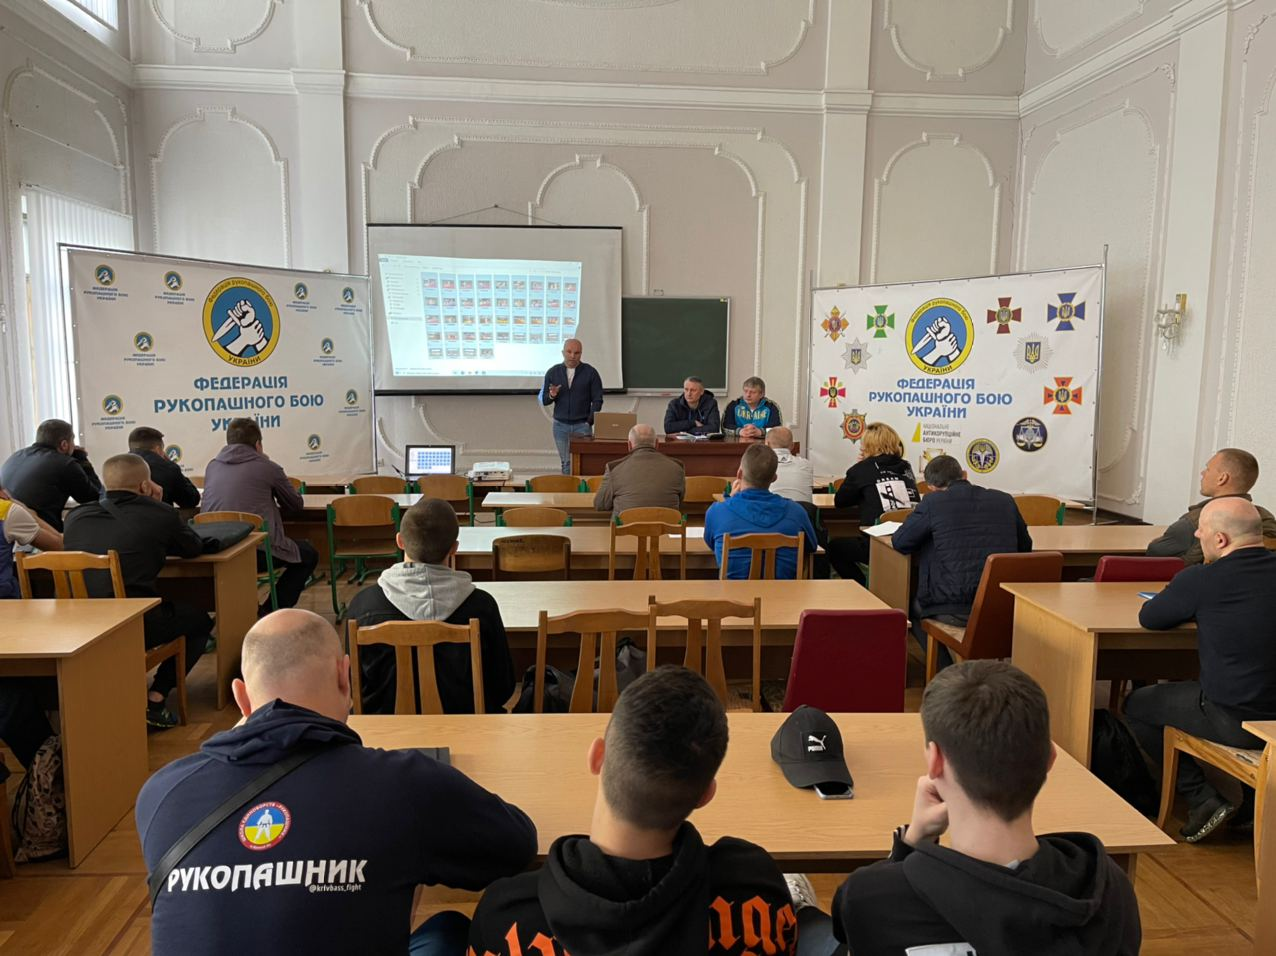 The refereeing seminar on hand-to-hand combat started in Kyiv city